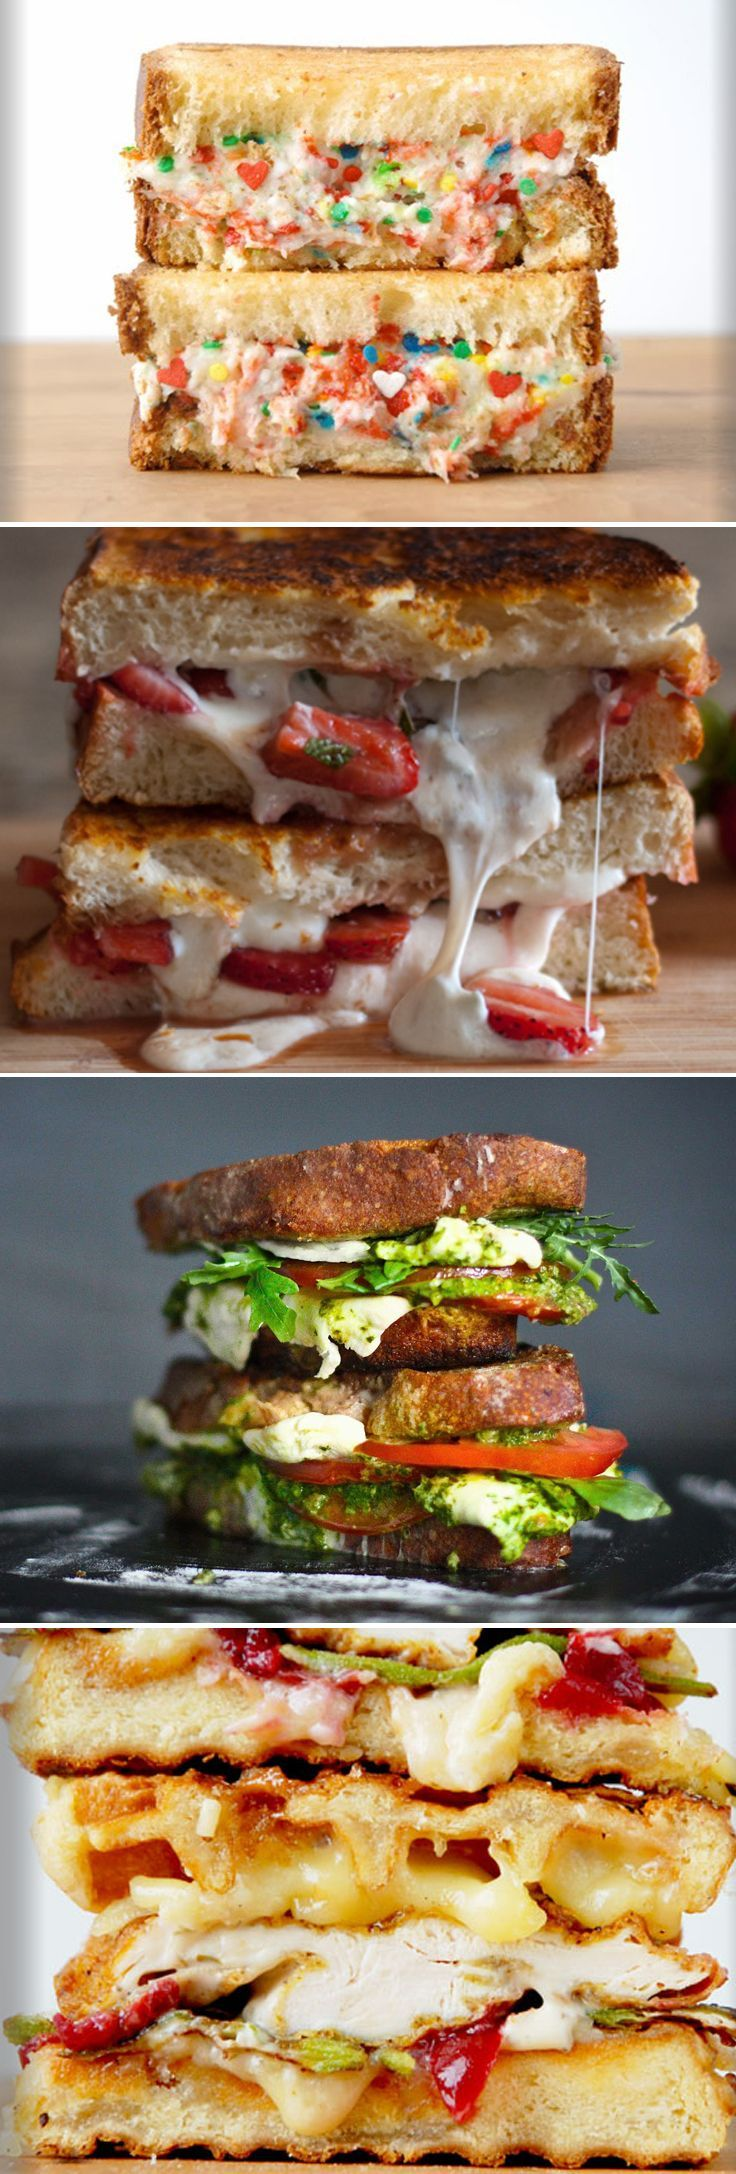 Creative grilled cheese sandwich recipes including: Funfetti